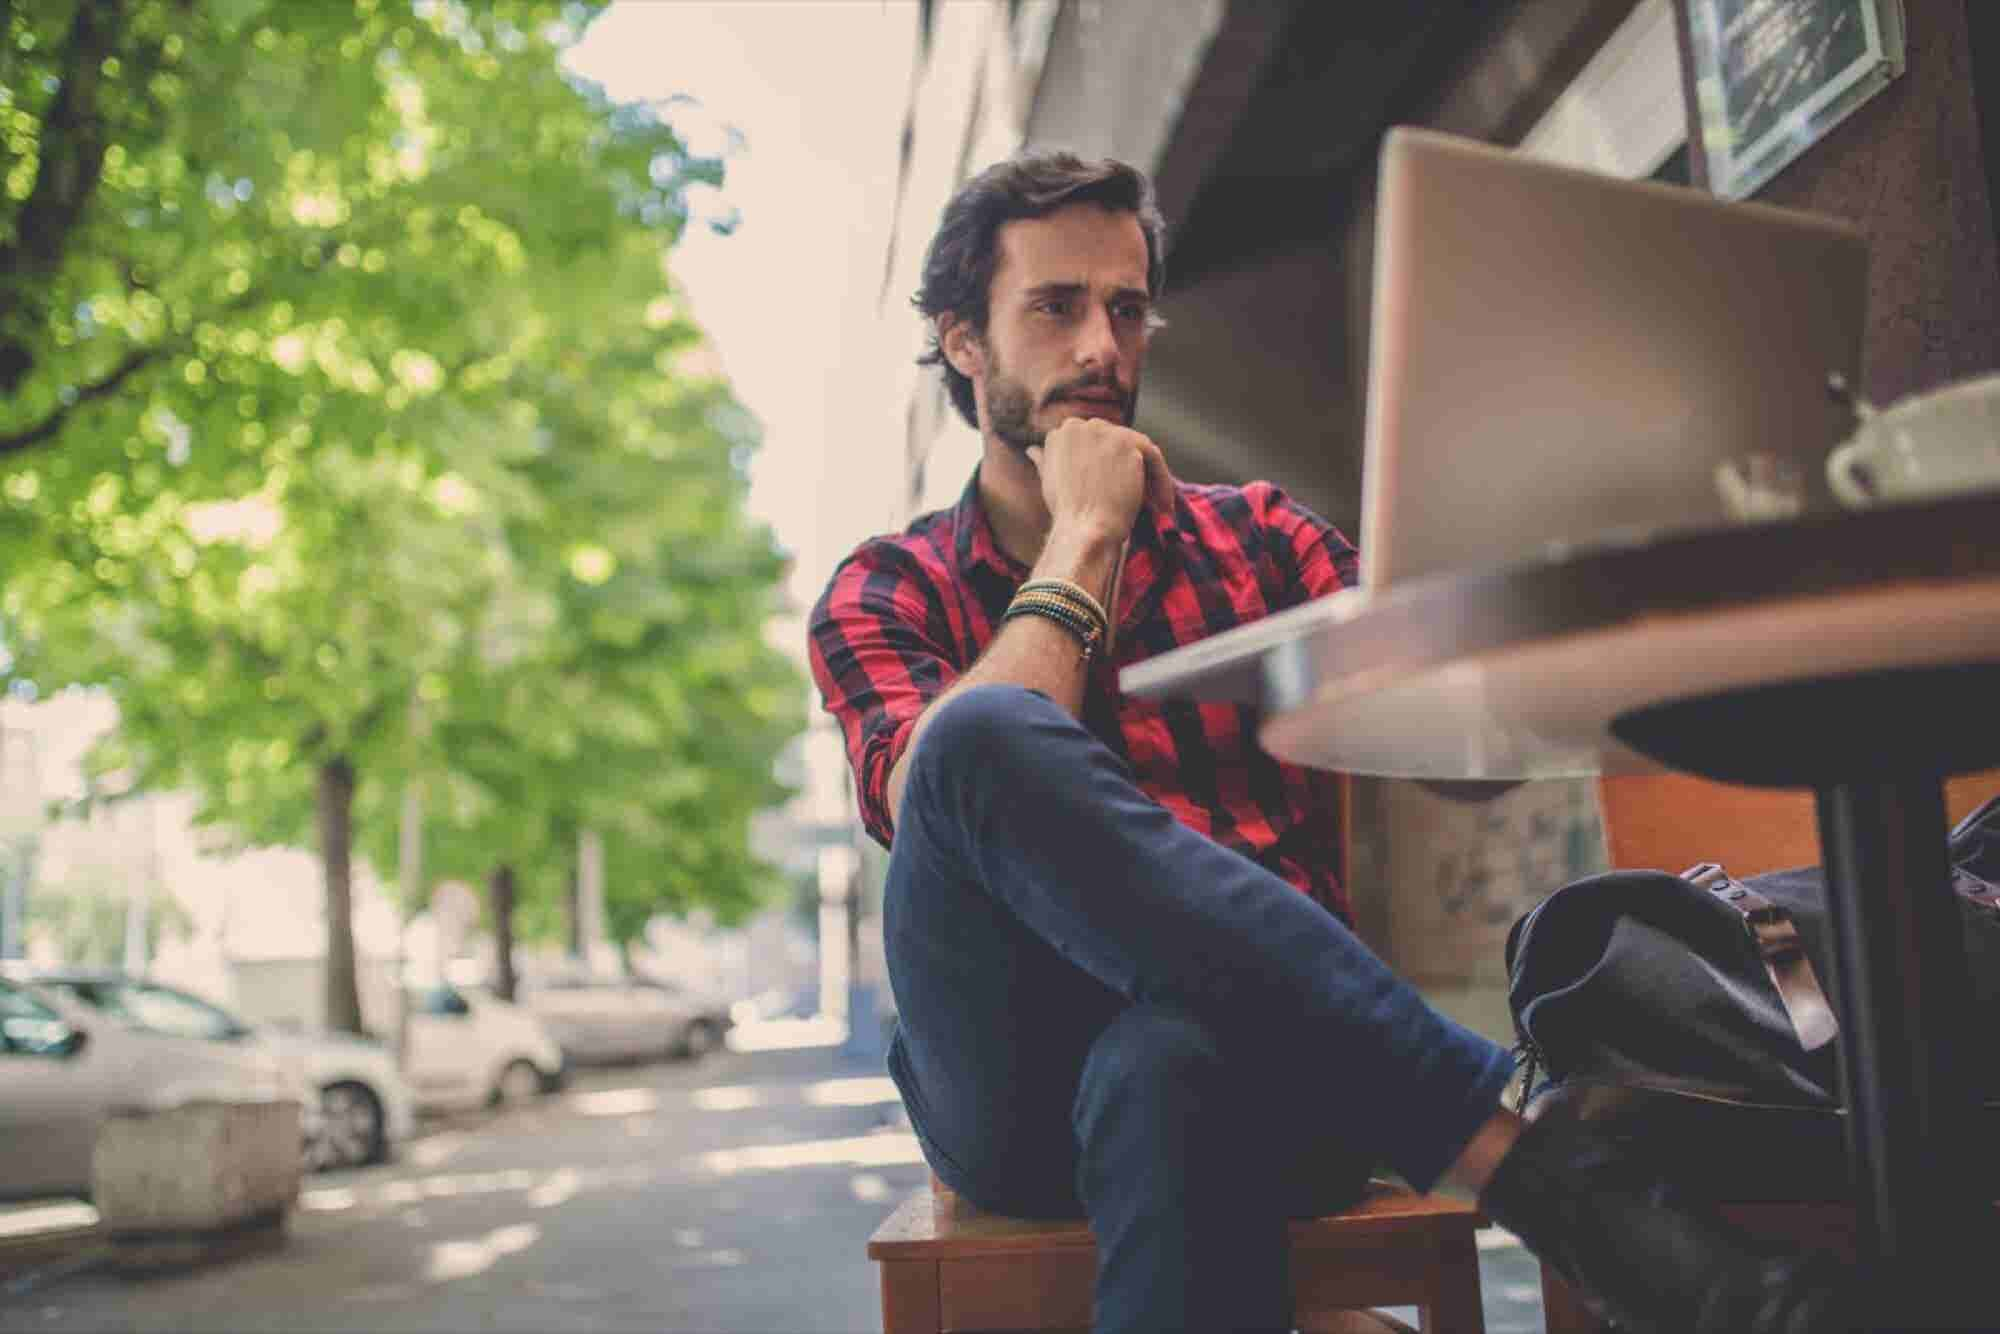 These Are the Skills Freelancers Need Most to Make an Impact Right Now